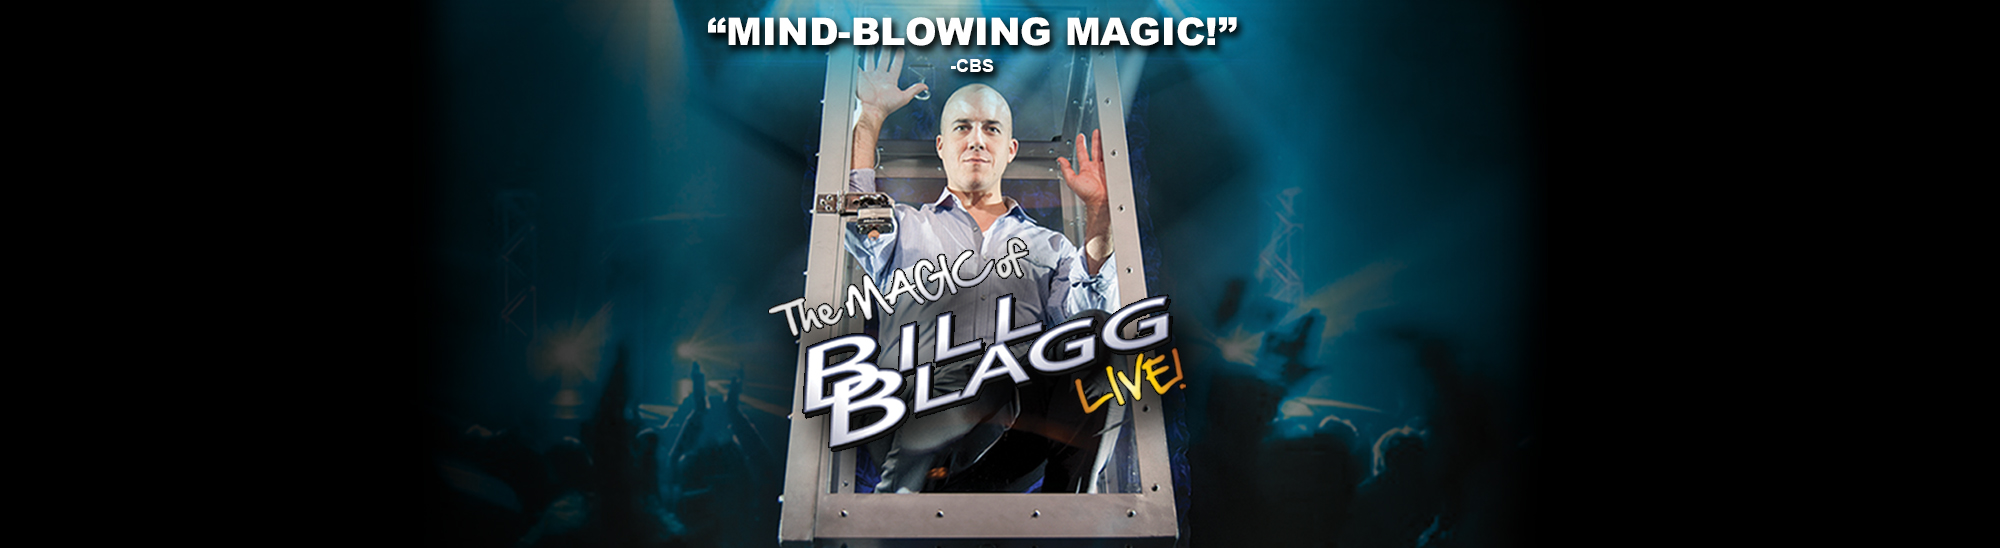 the-magic-of-bill-blagg-live